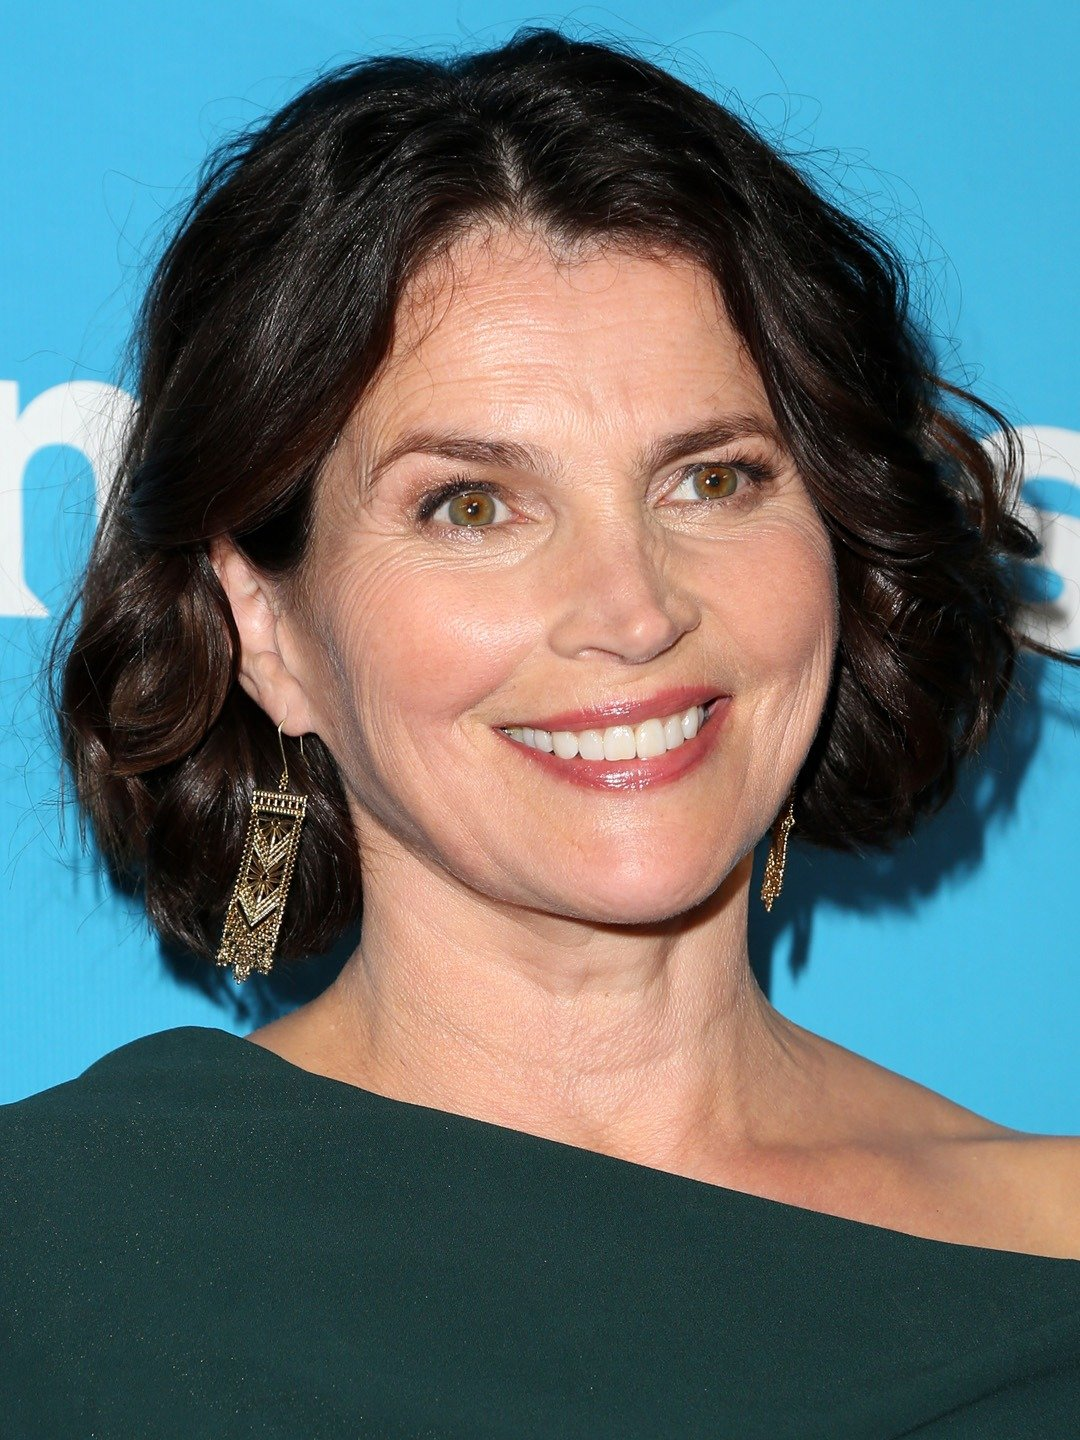 How tall is Julia Ormond?